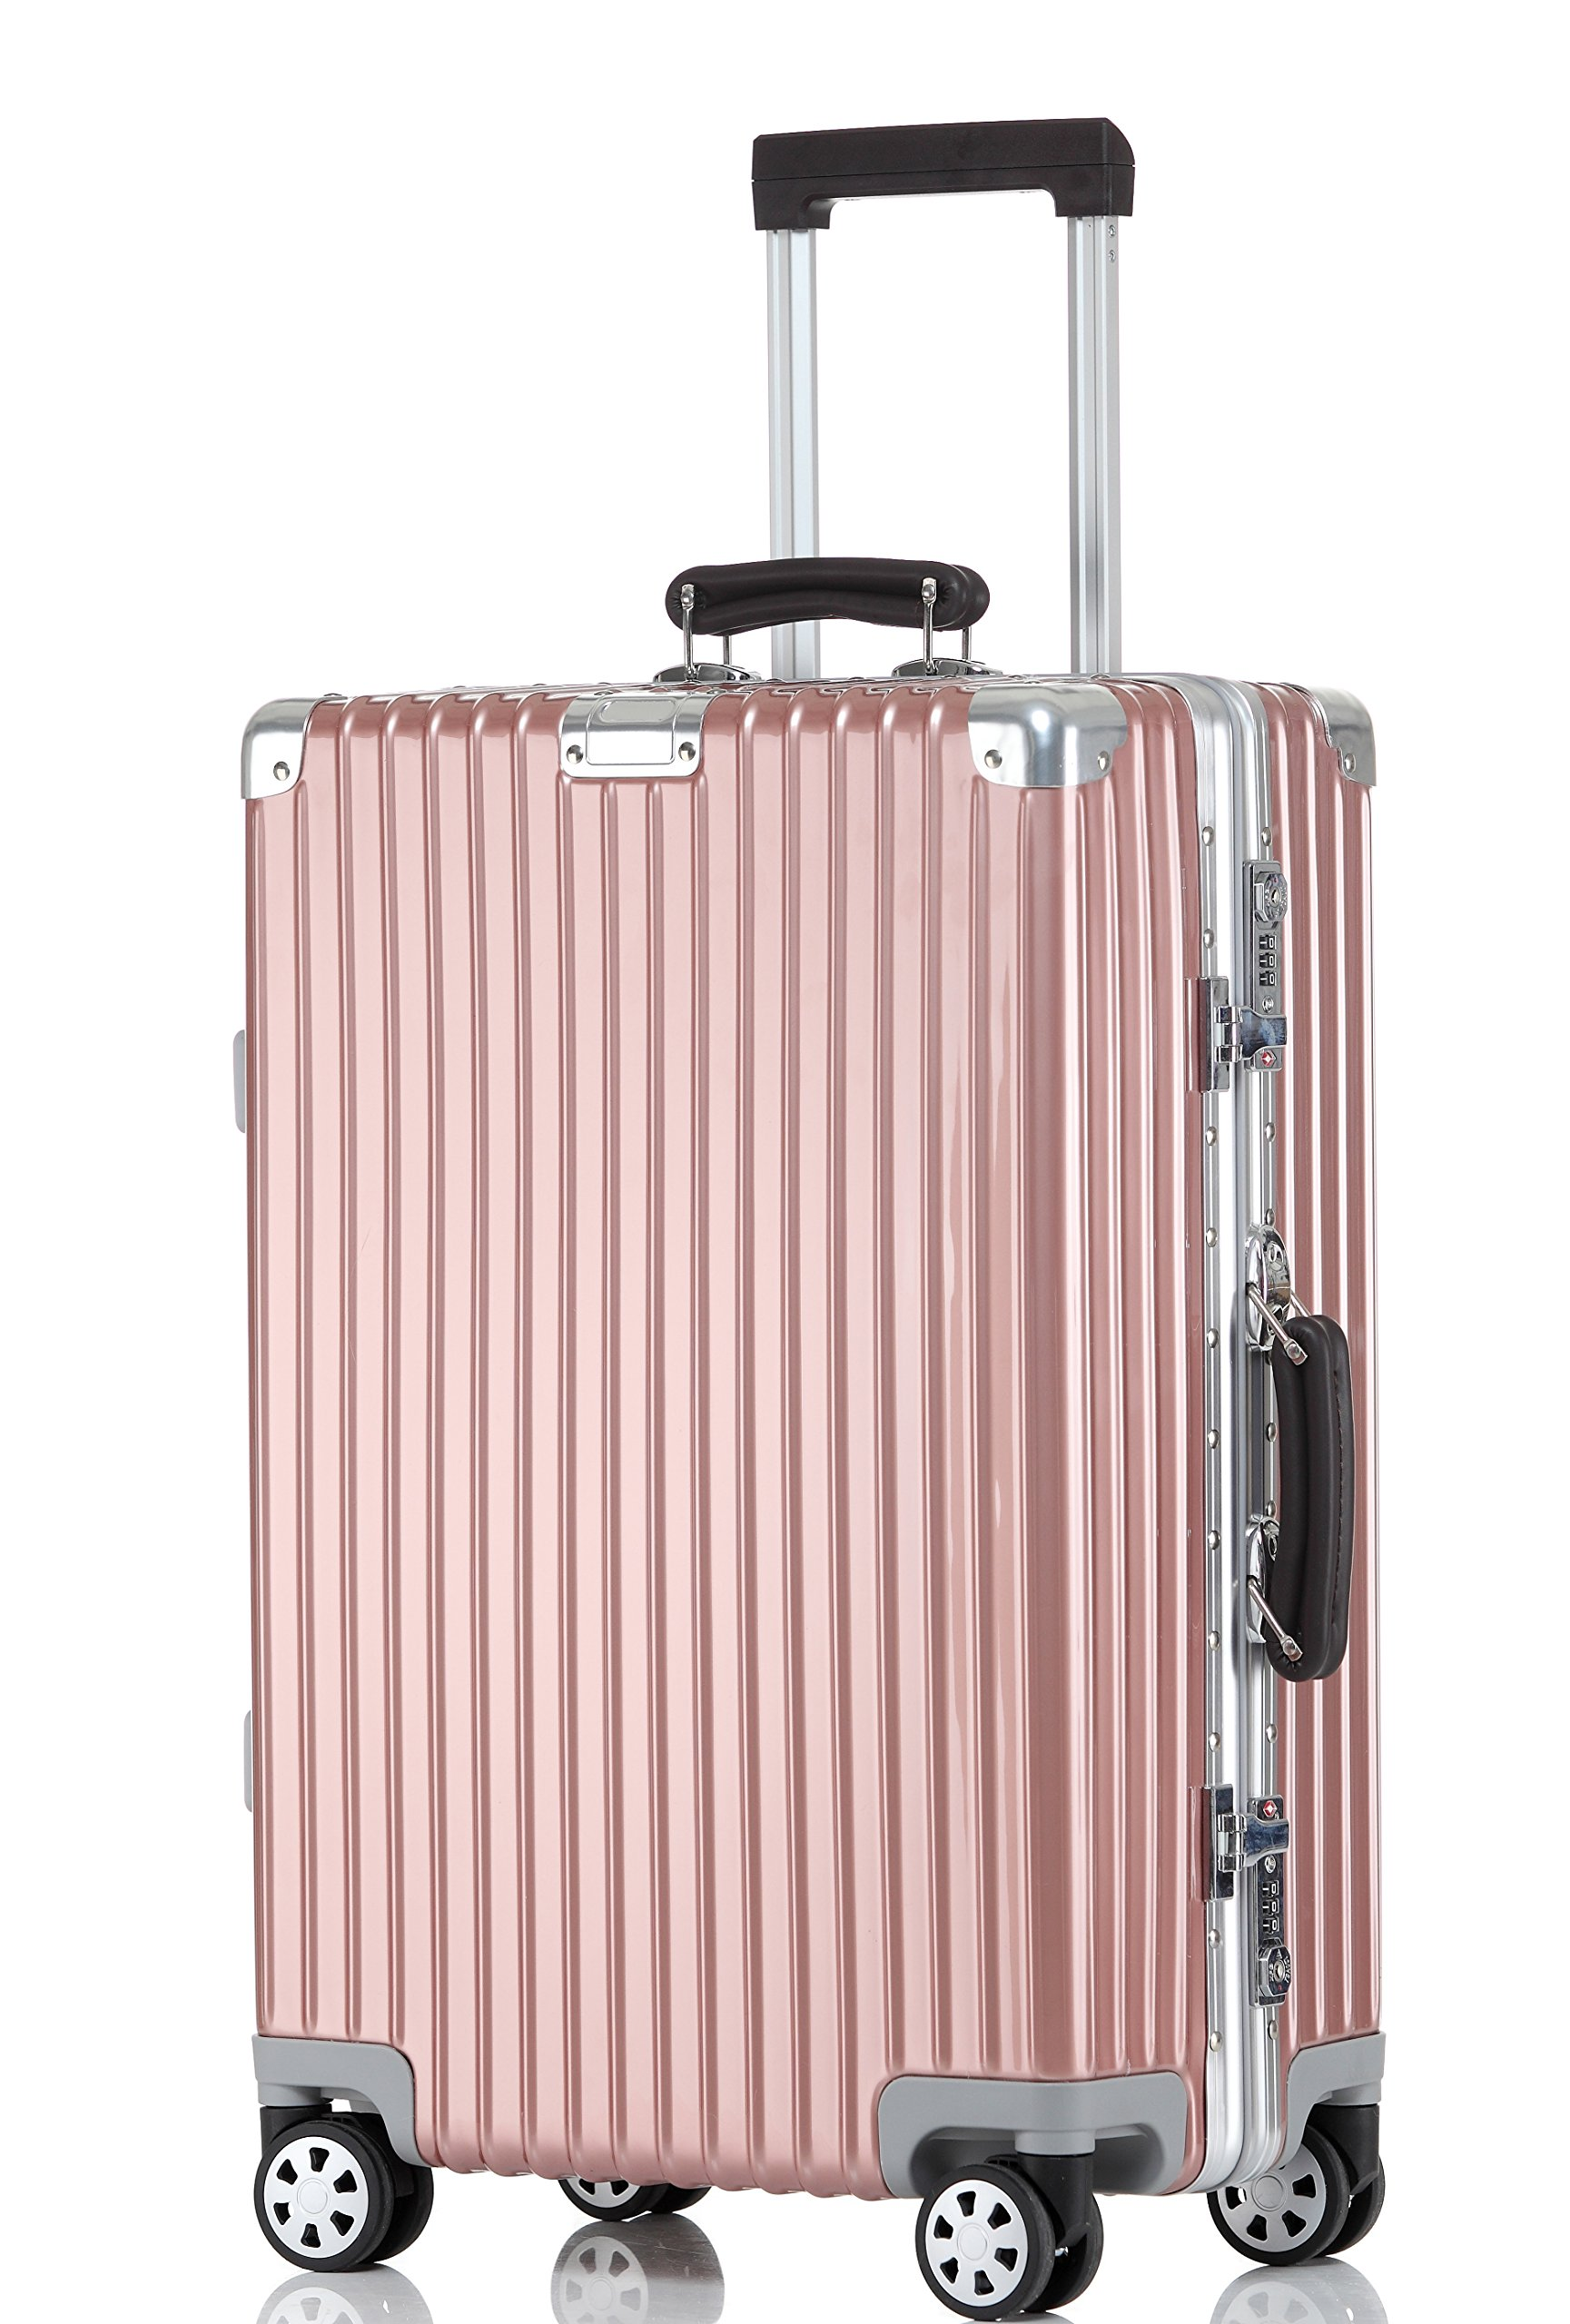 Luggage Aluminum Frame Hardshell Spinner Suitcase TSA Approved 28'', Rose Gold